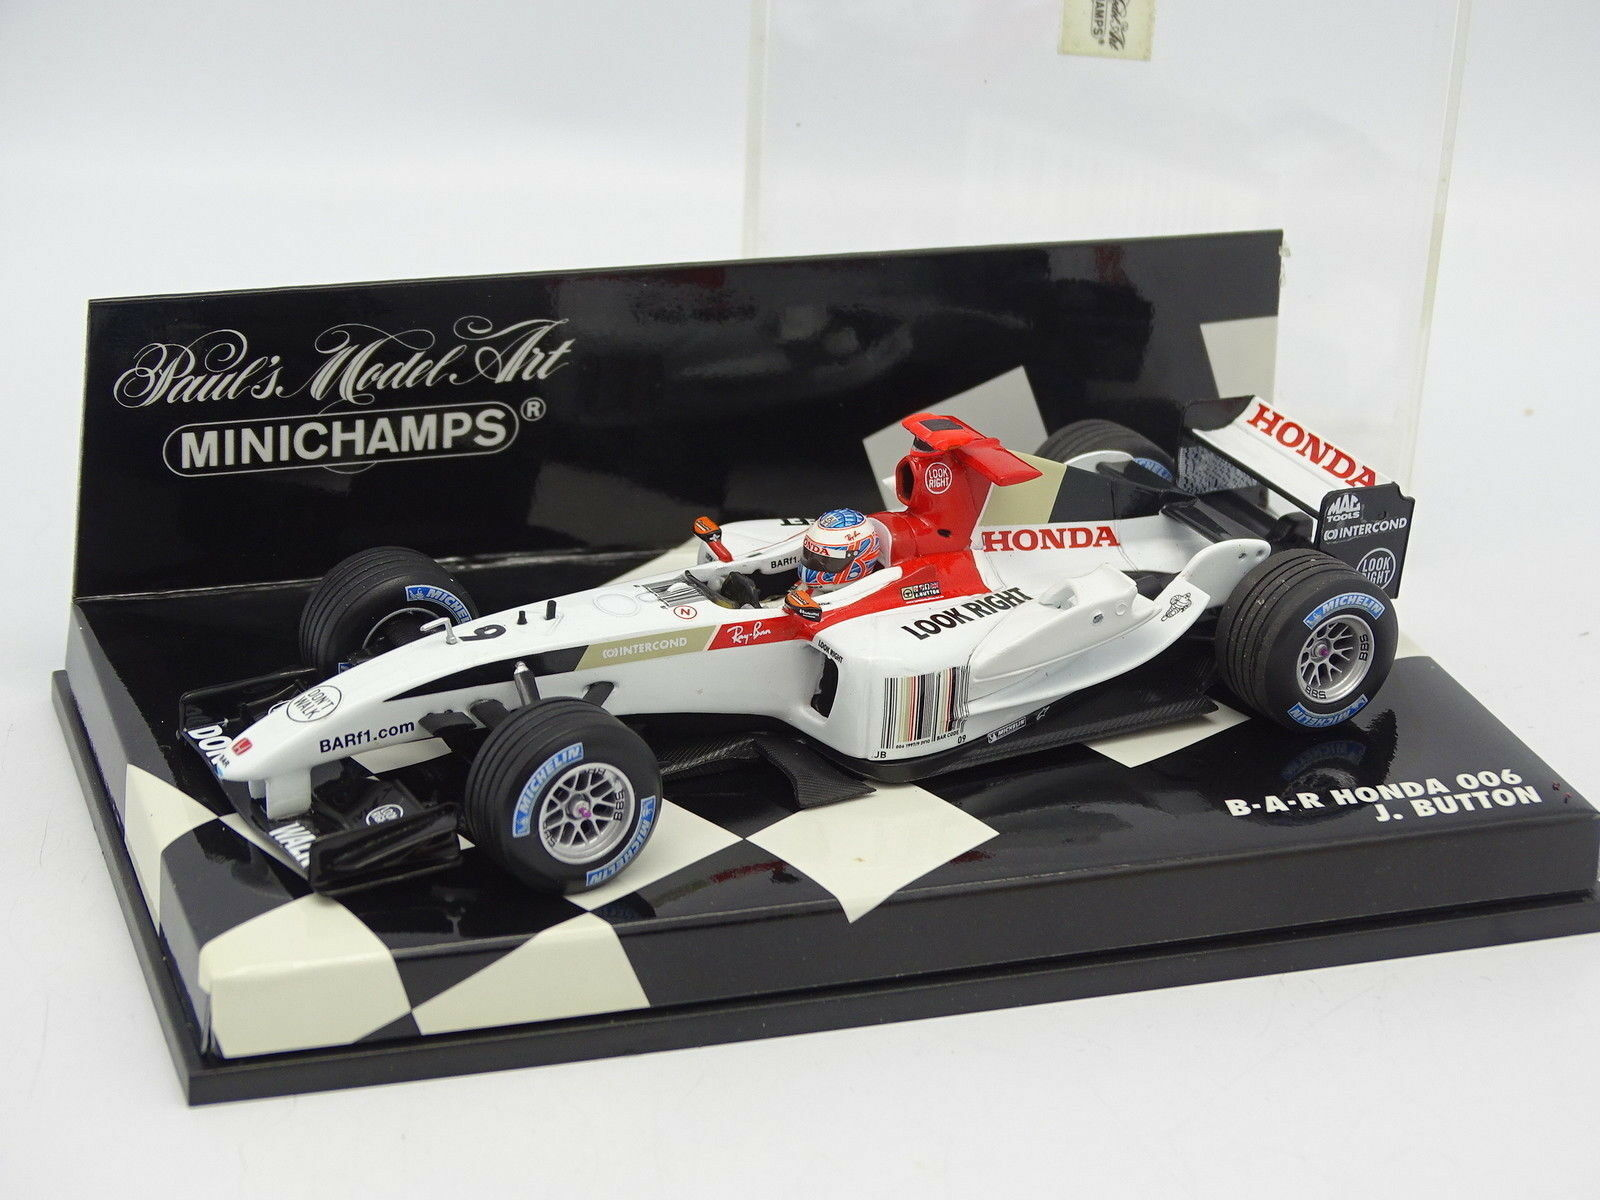 Minichamps 1 43 - F1 Bar Honda 006 Button